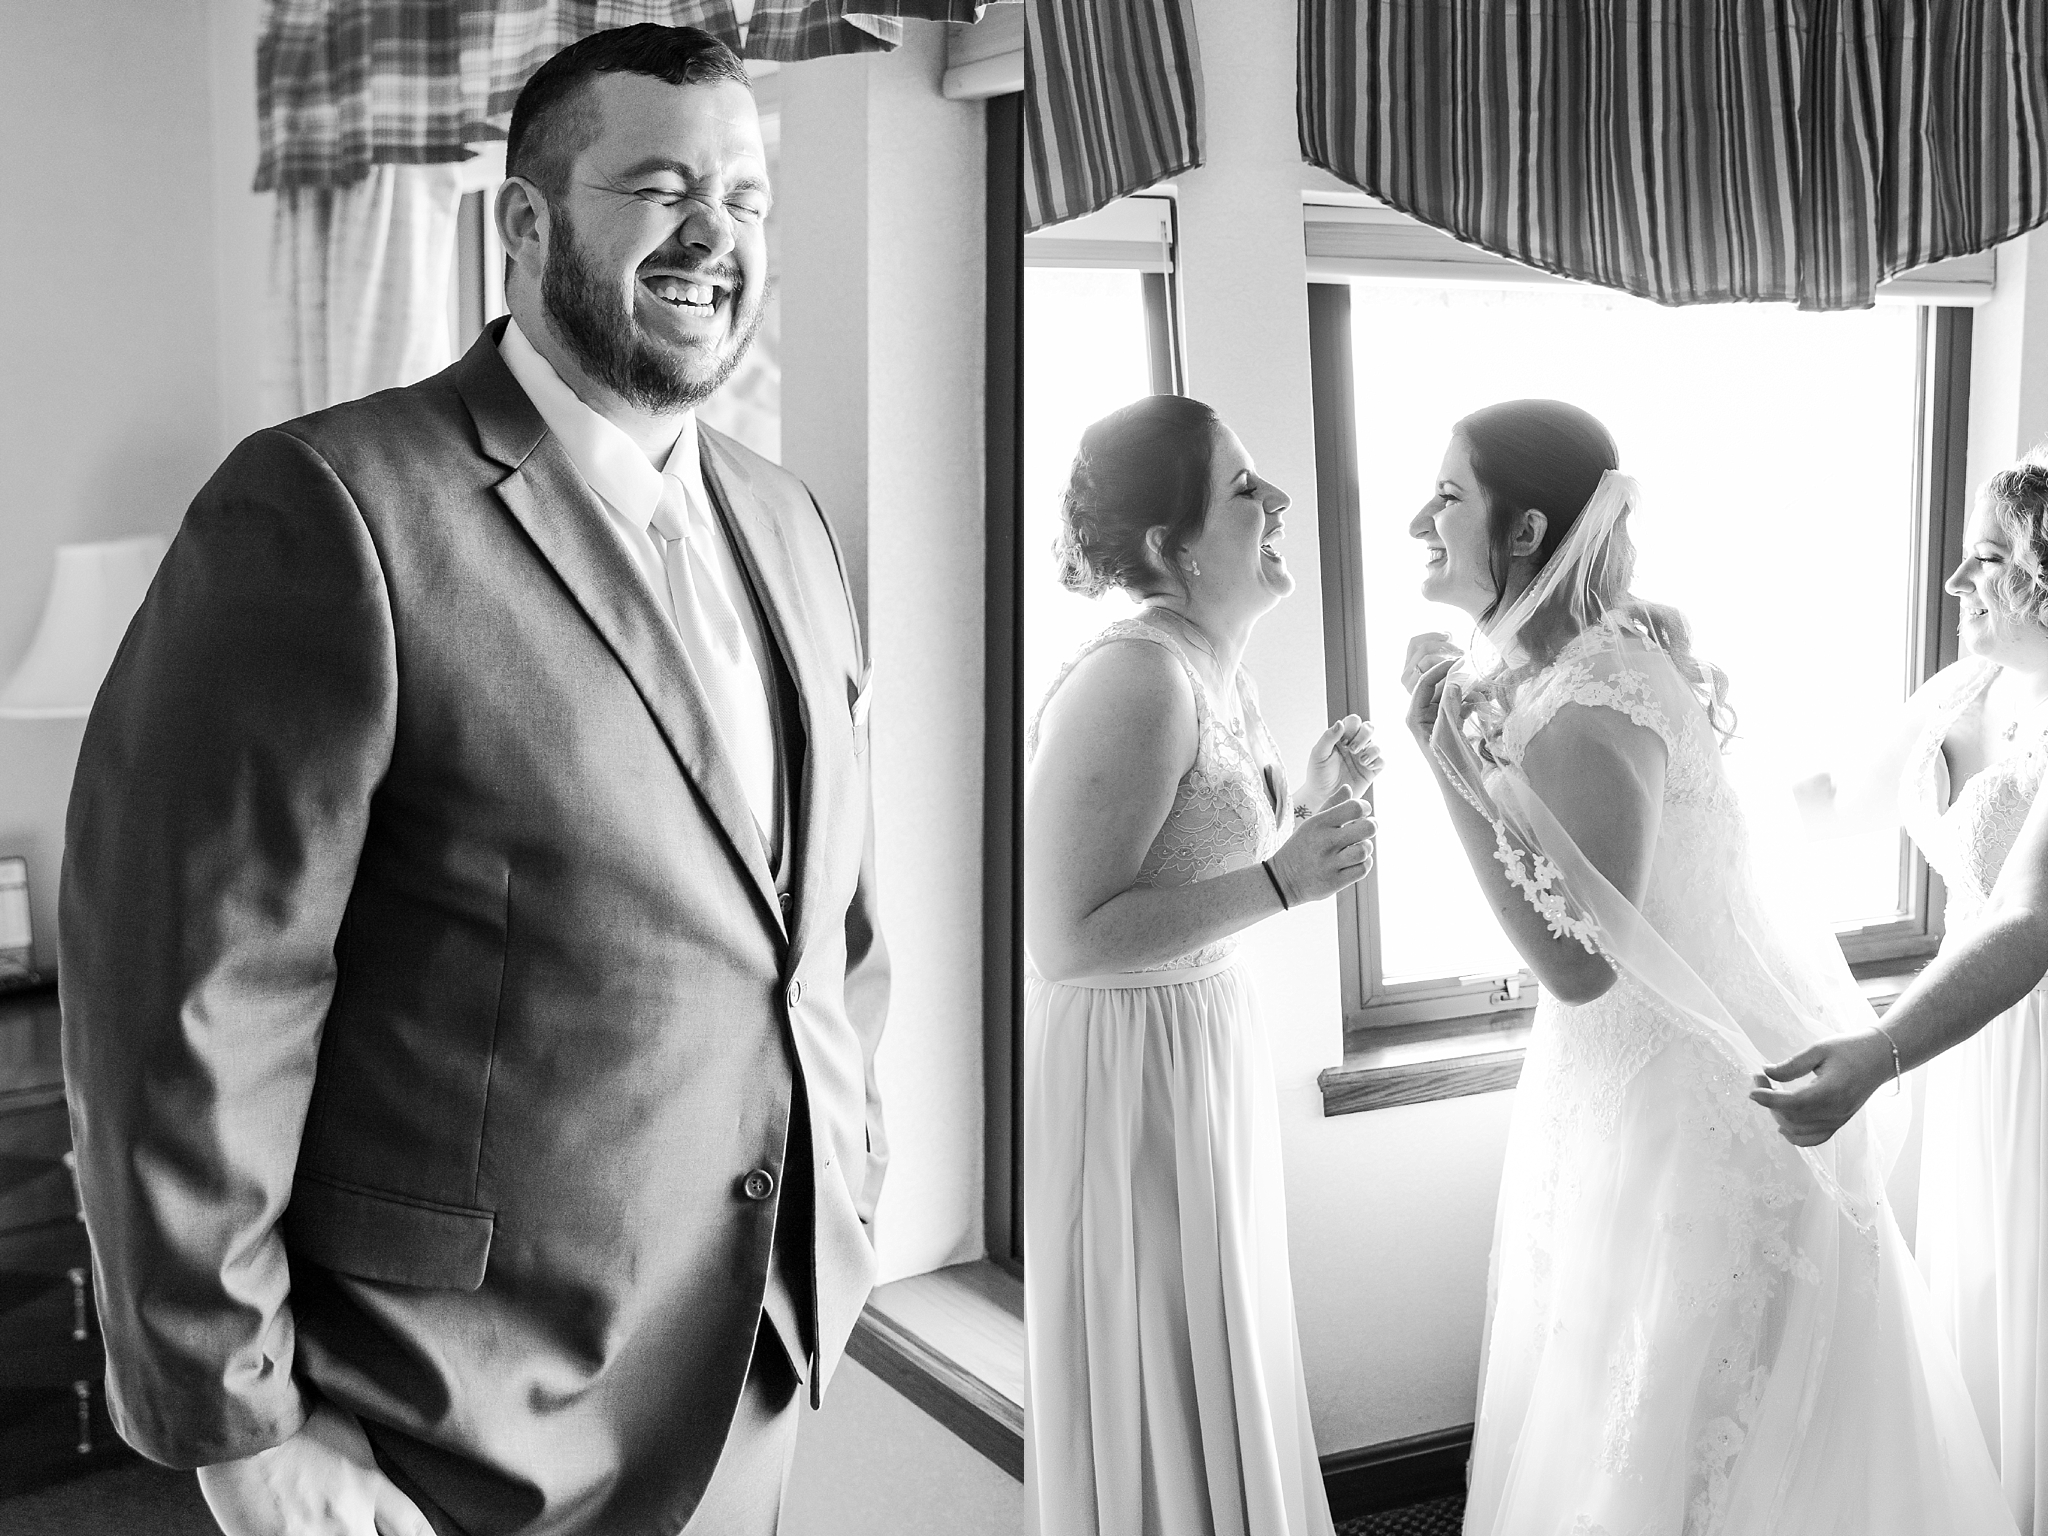 emotional-laid-back-romantic-wedding-photos-at-adrian-college-herrick-chapel-in-adrian-michigan-by-courtney-carolyn-photography_0011.jpg